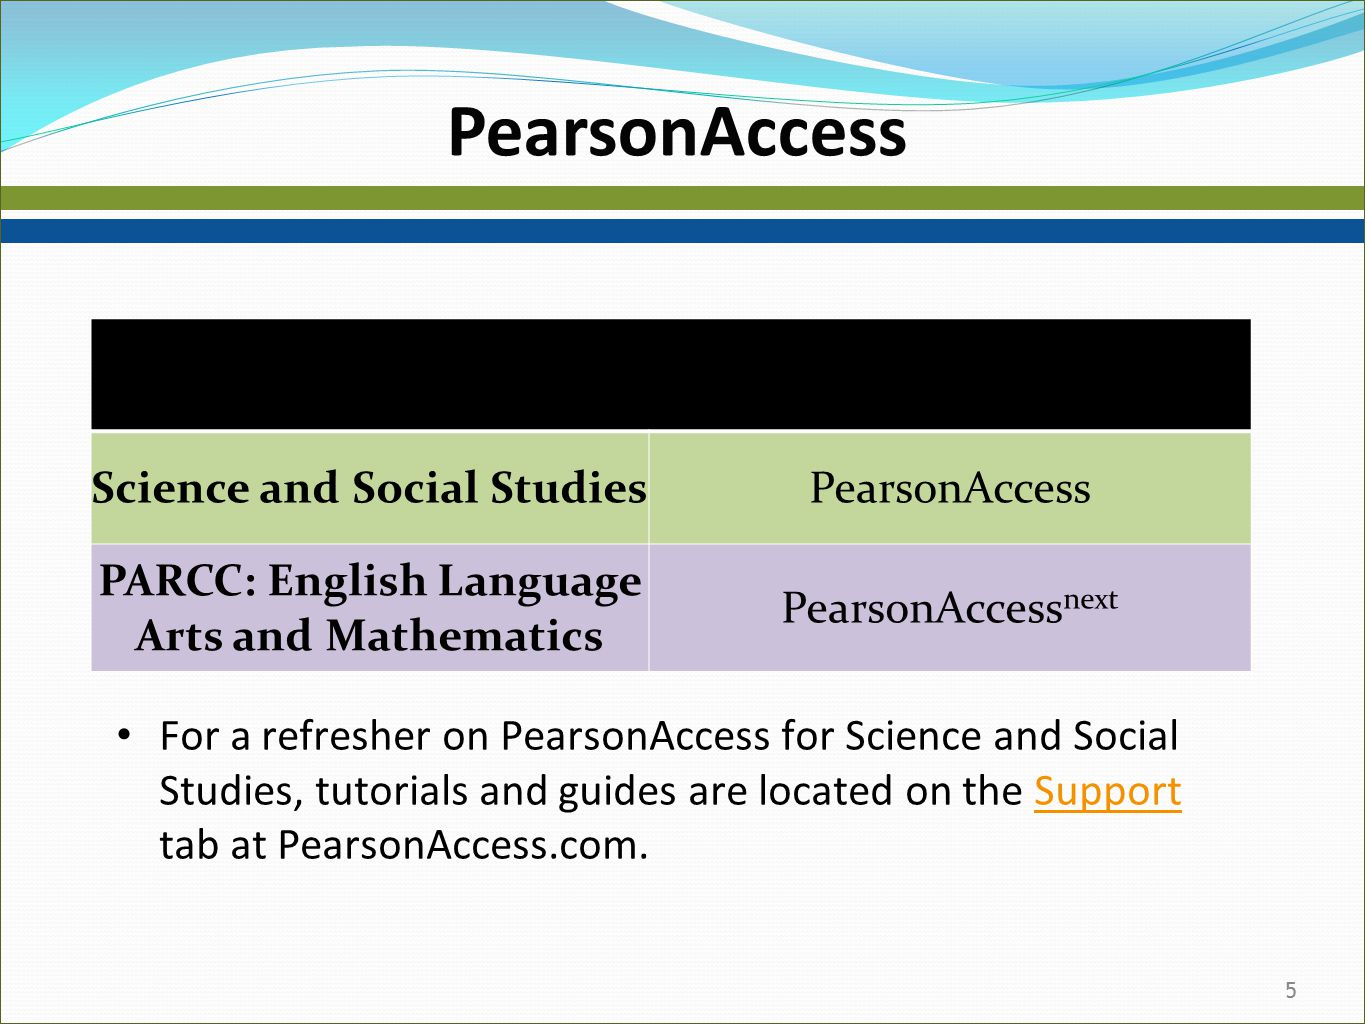 Two PearsonAccess Systems Science and Social StudiesPearsonAccess PARCC: English Language Arts and Mathematics PearsonAccess next PearsonAccess For a refresher on PearsonAccess for Science and Social Studies, tutorials and guides are located on the Support tab at PearsonAccess.com.Support 5